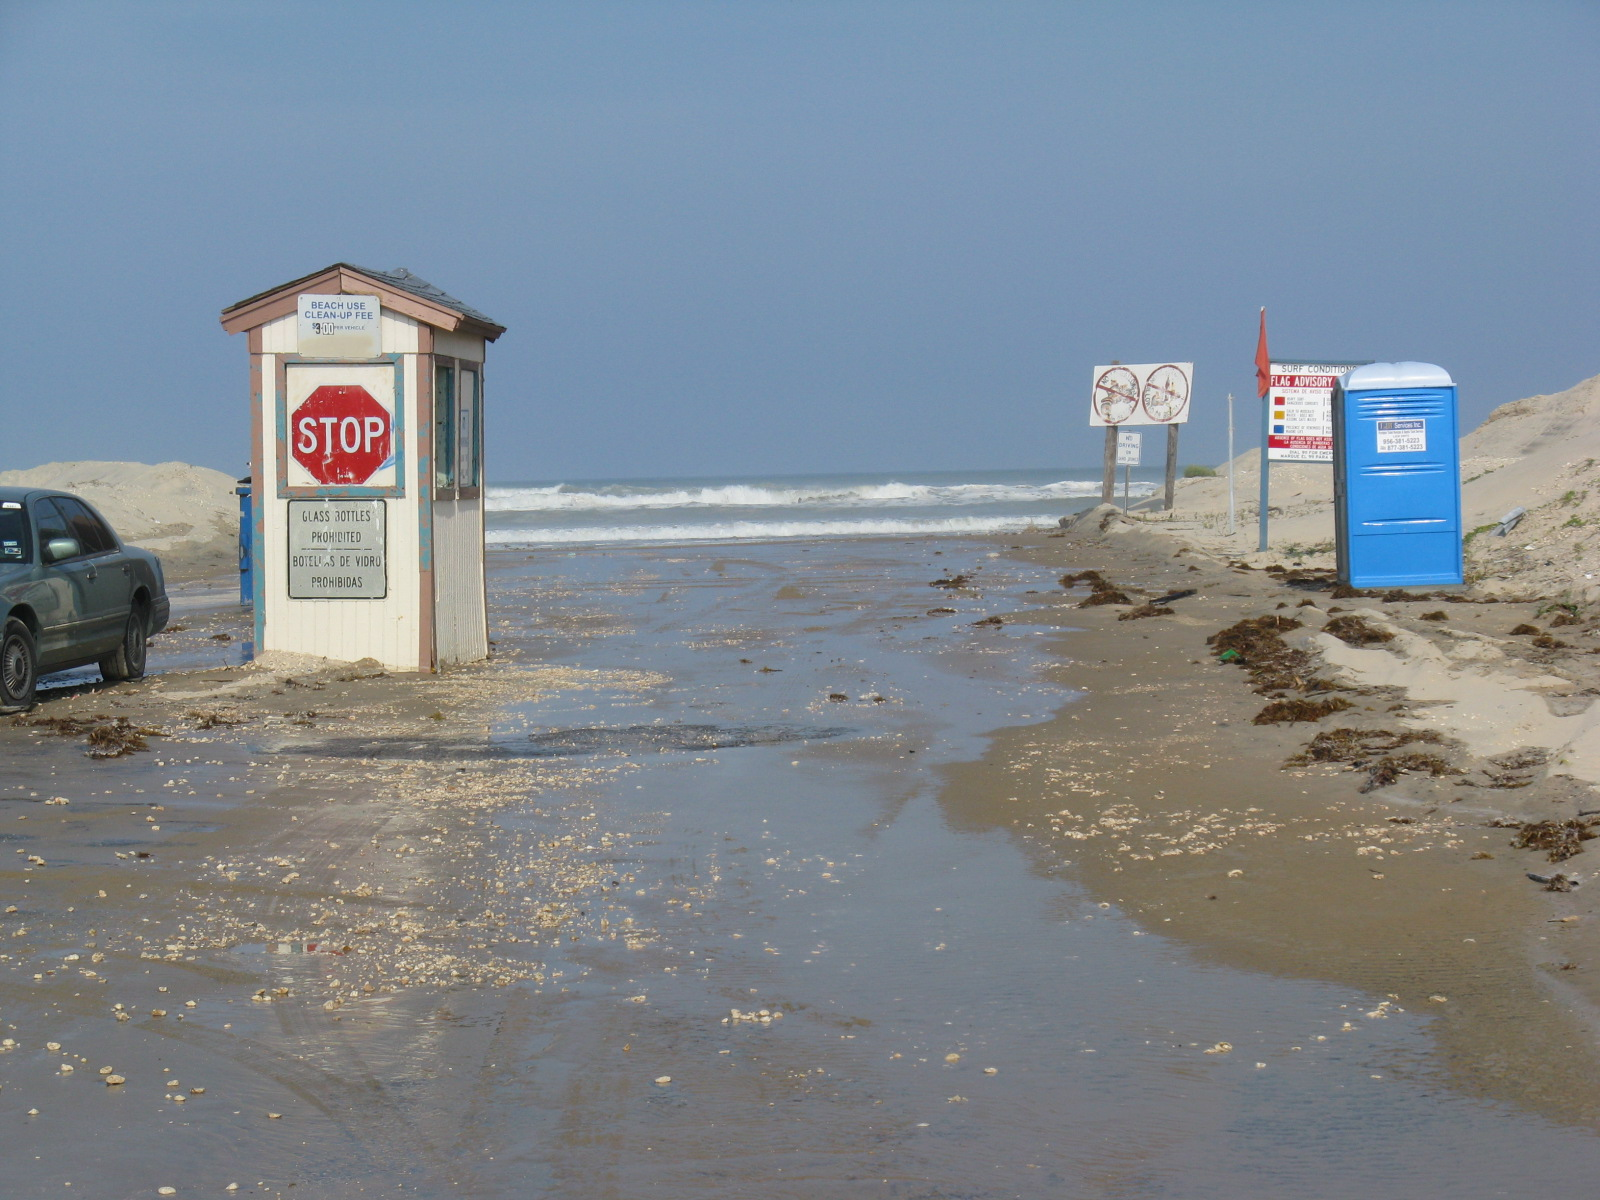 Surfs up way up as gustav swells ride into south padre island on photo of water easing through south padre island beach access 6 just prior to high nvjuhfo Choice Image